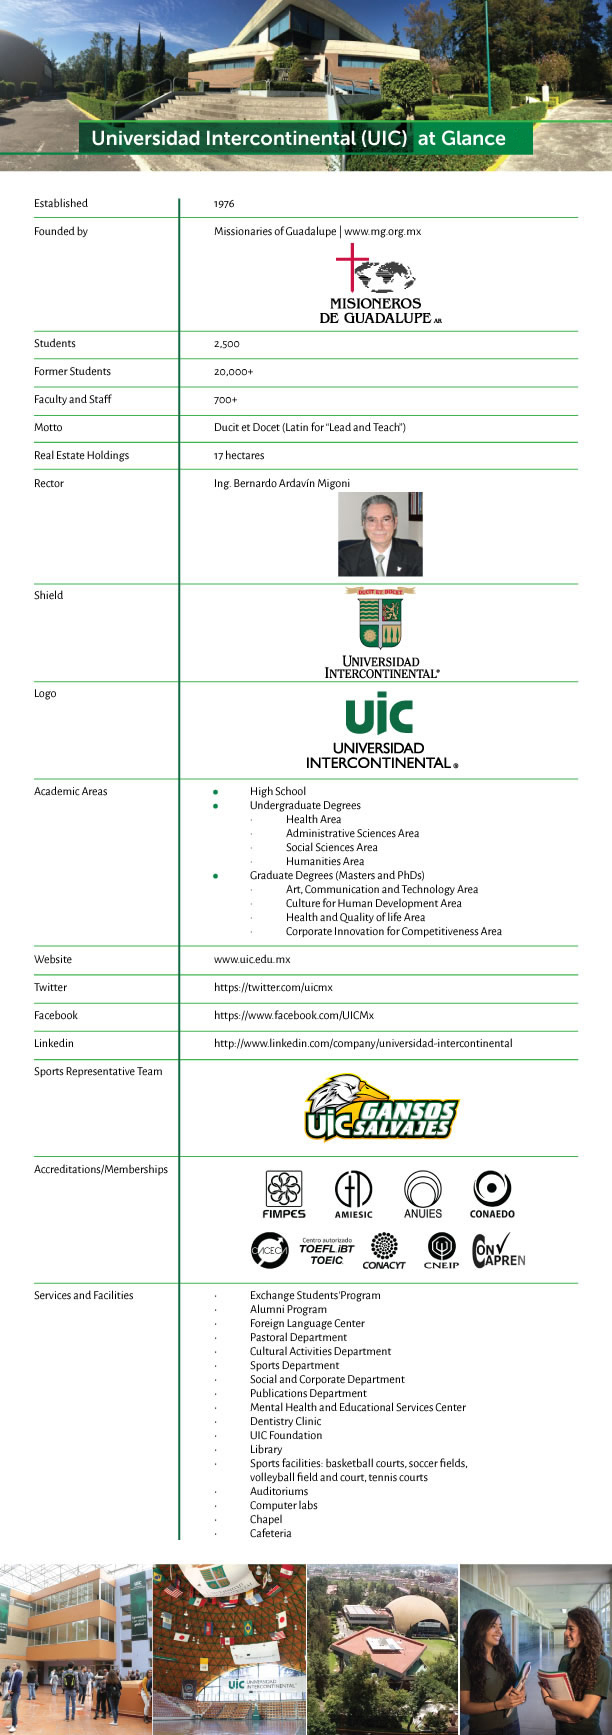 UIC at a Glance